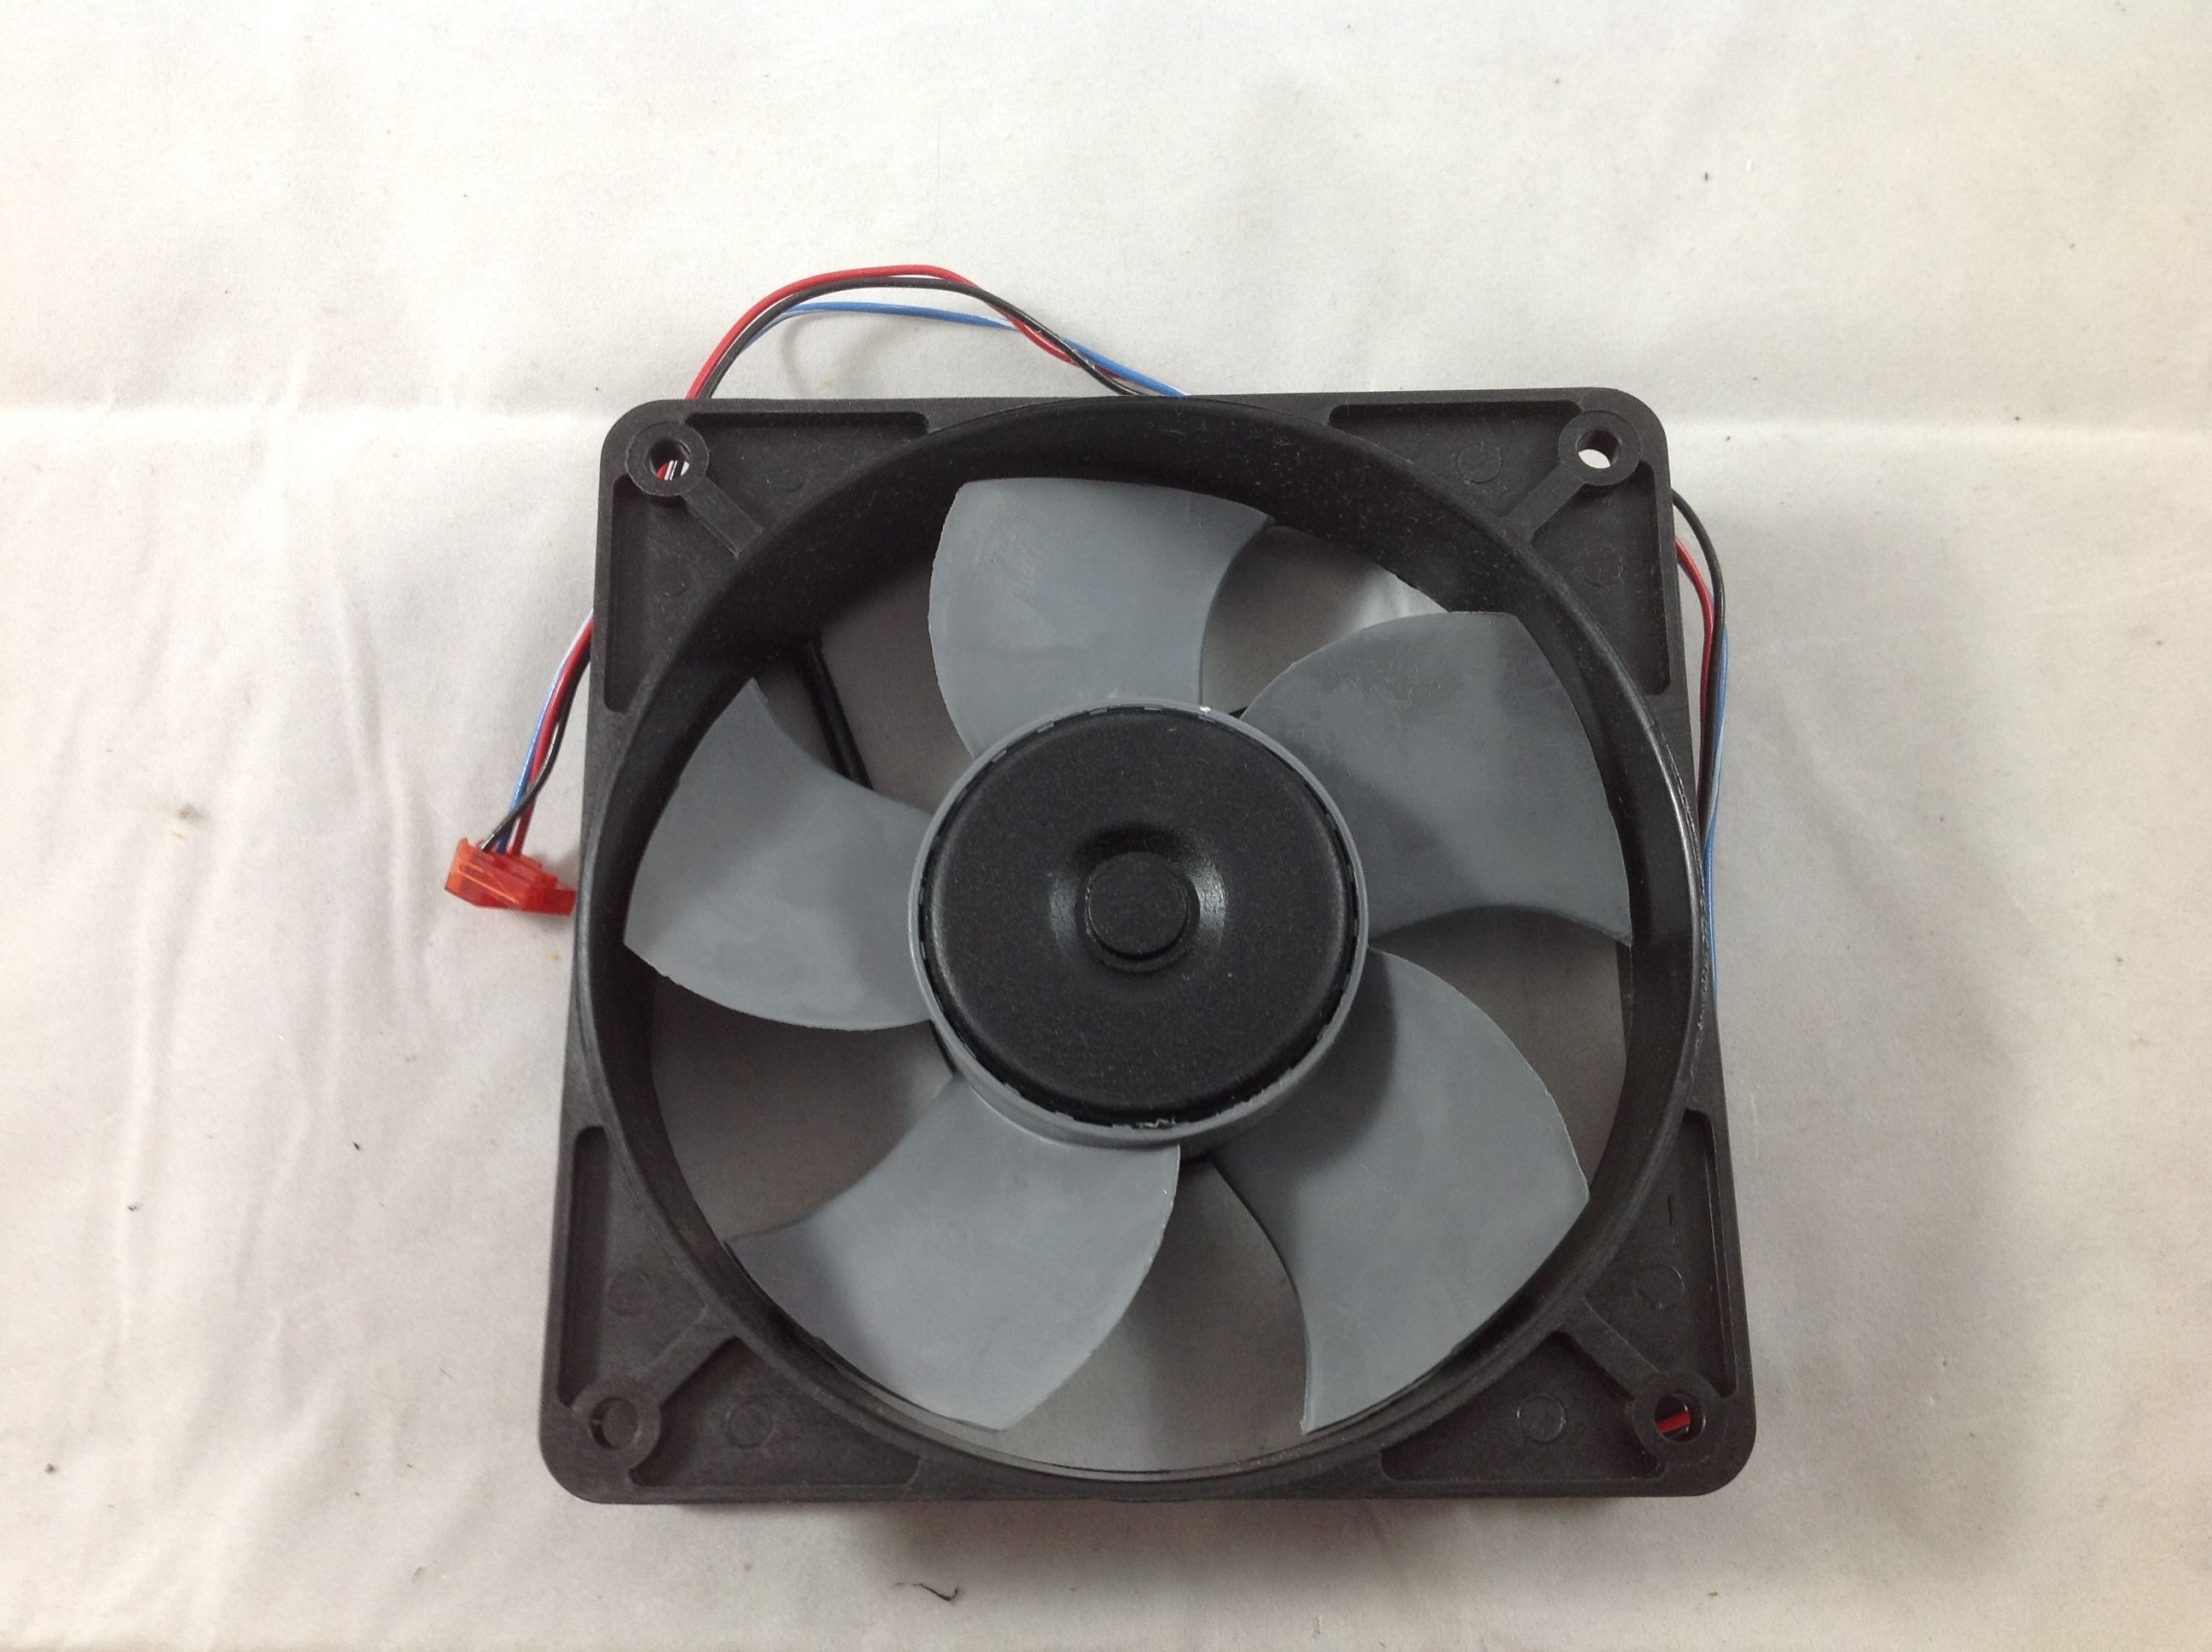 MC48B6NDNX - COMAIR ROTRON - 032900 FAN 48V FOR 15454 FAN TRAY ...